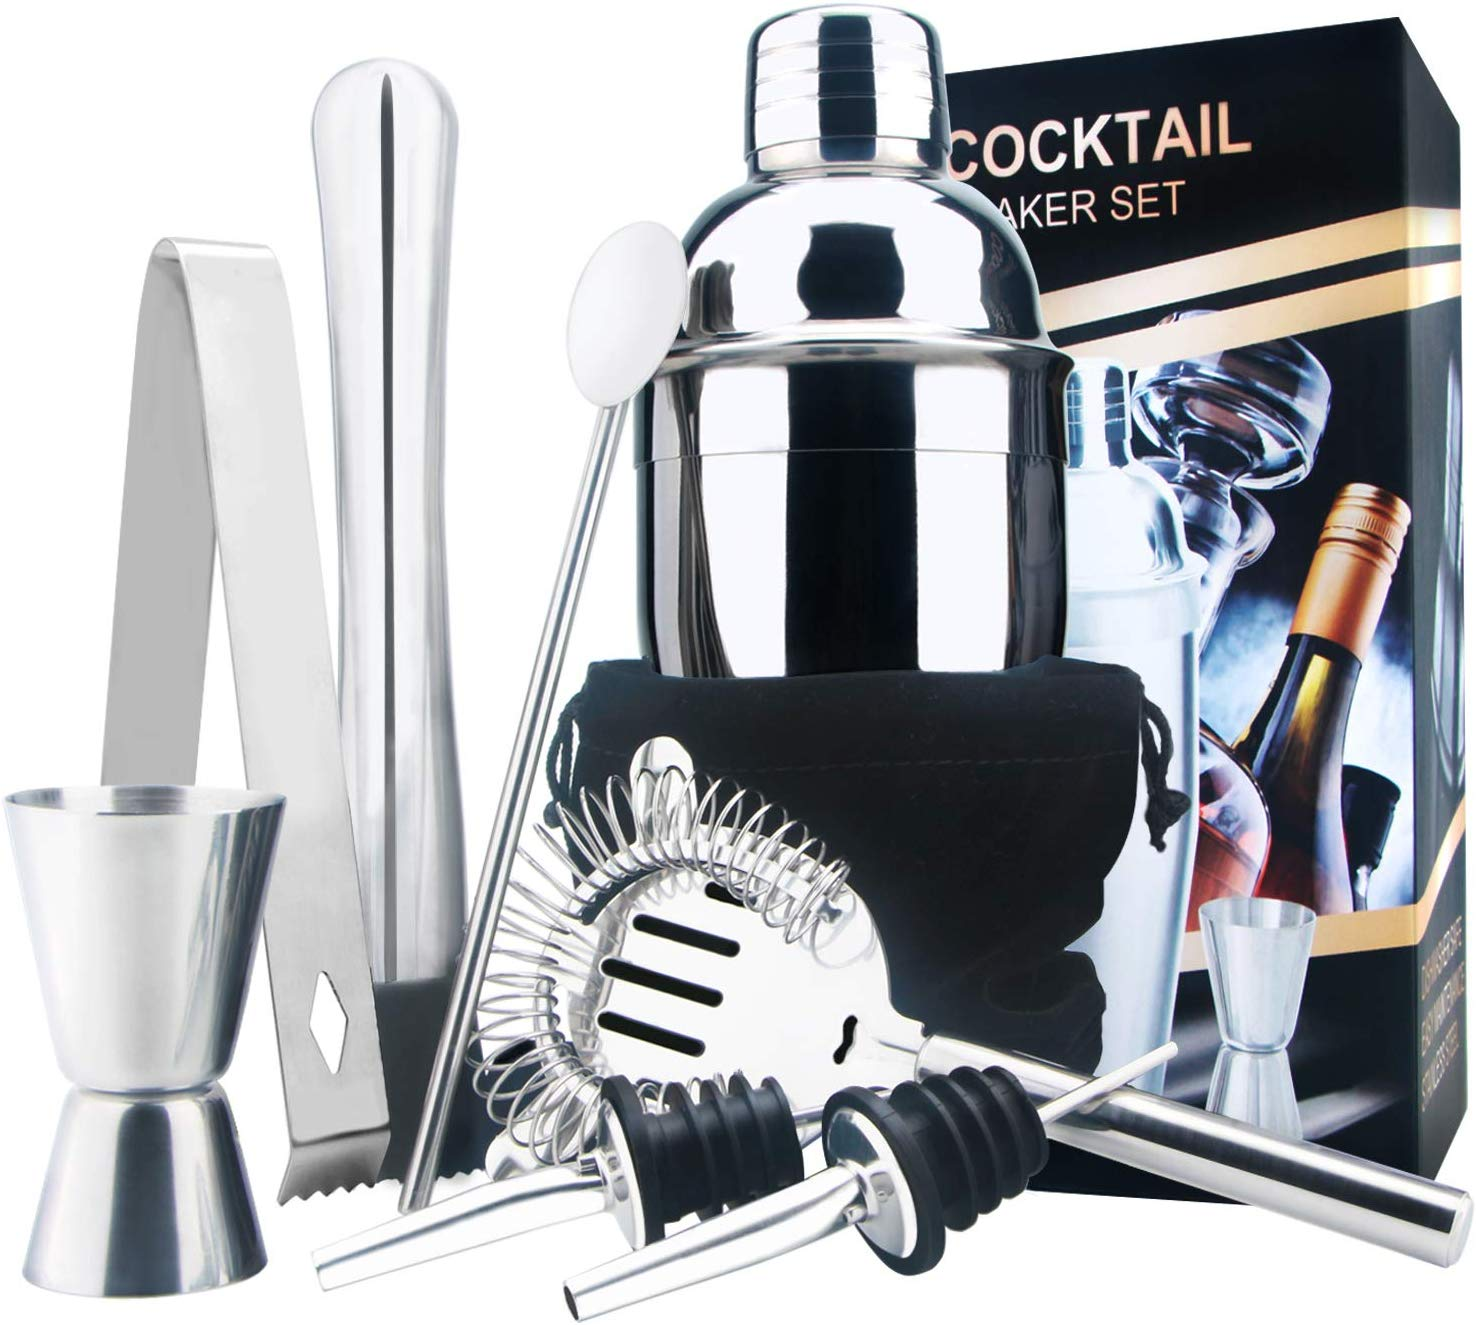 18oz Stainless Steel Cocktail Shaker Bar Set Tools